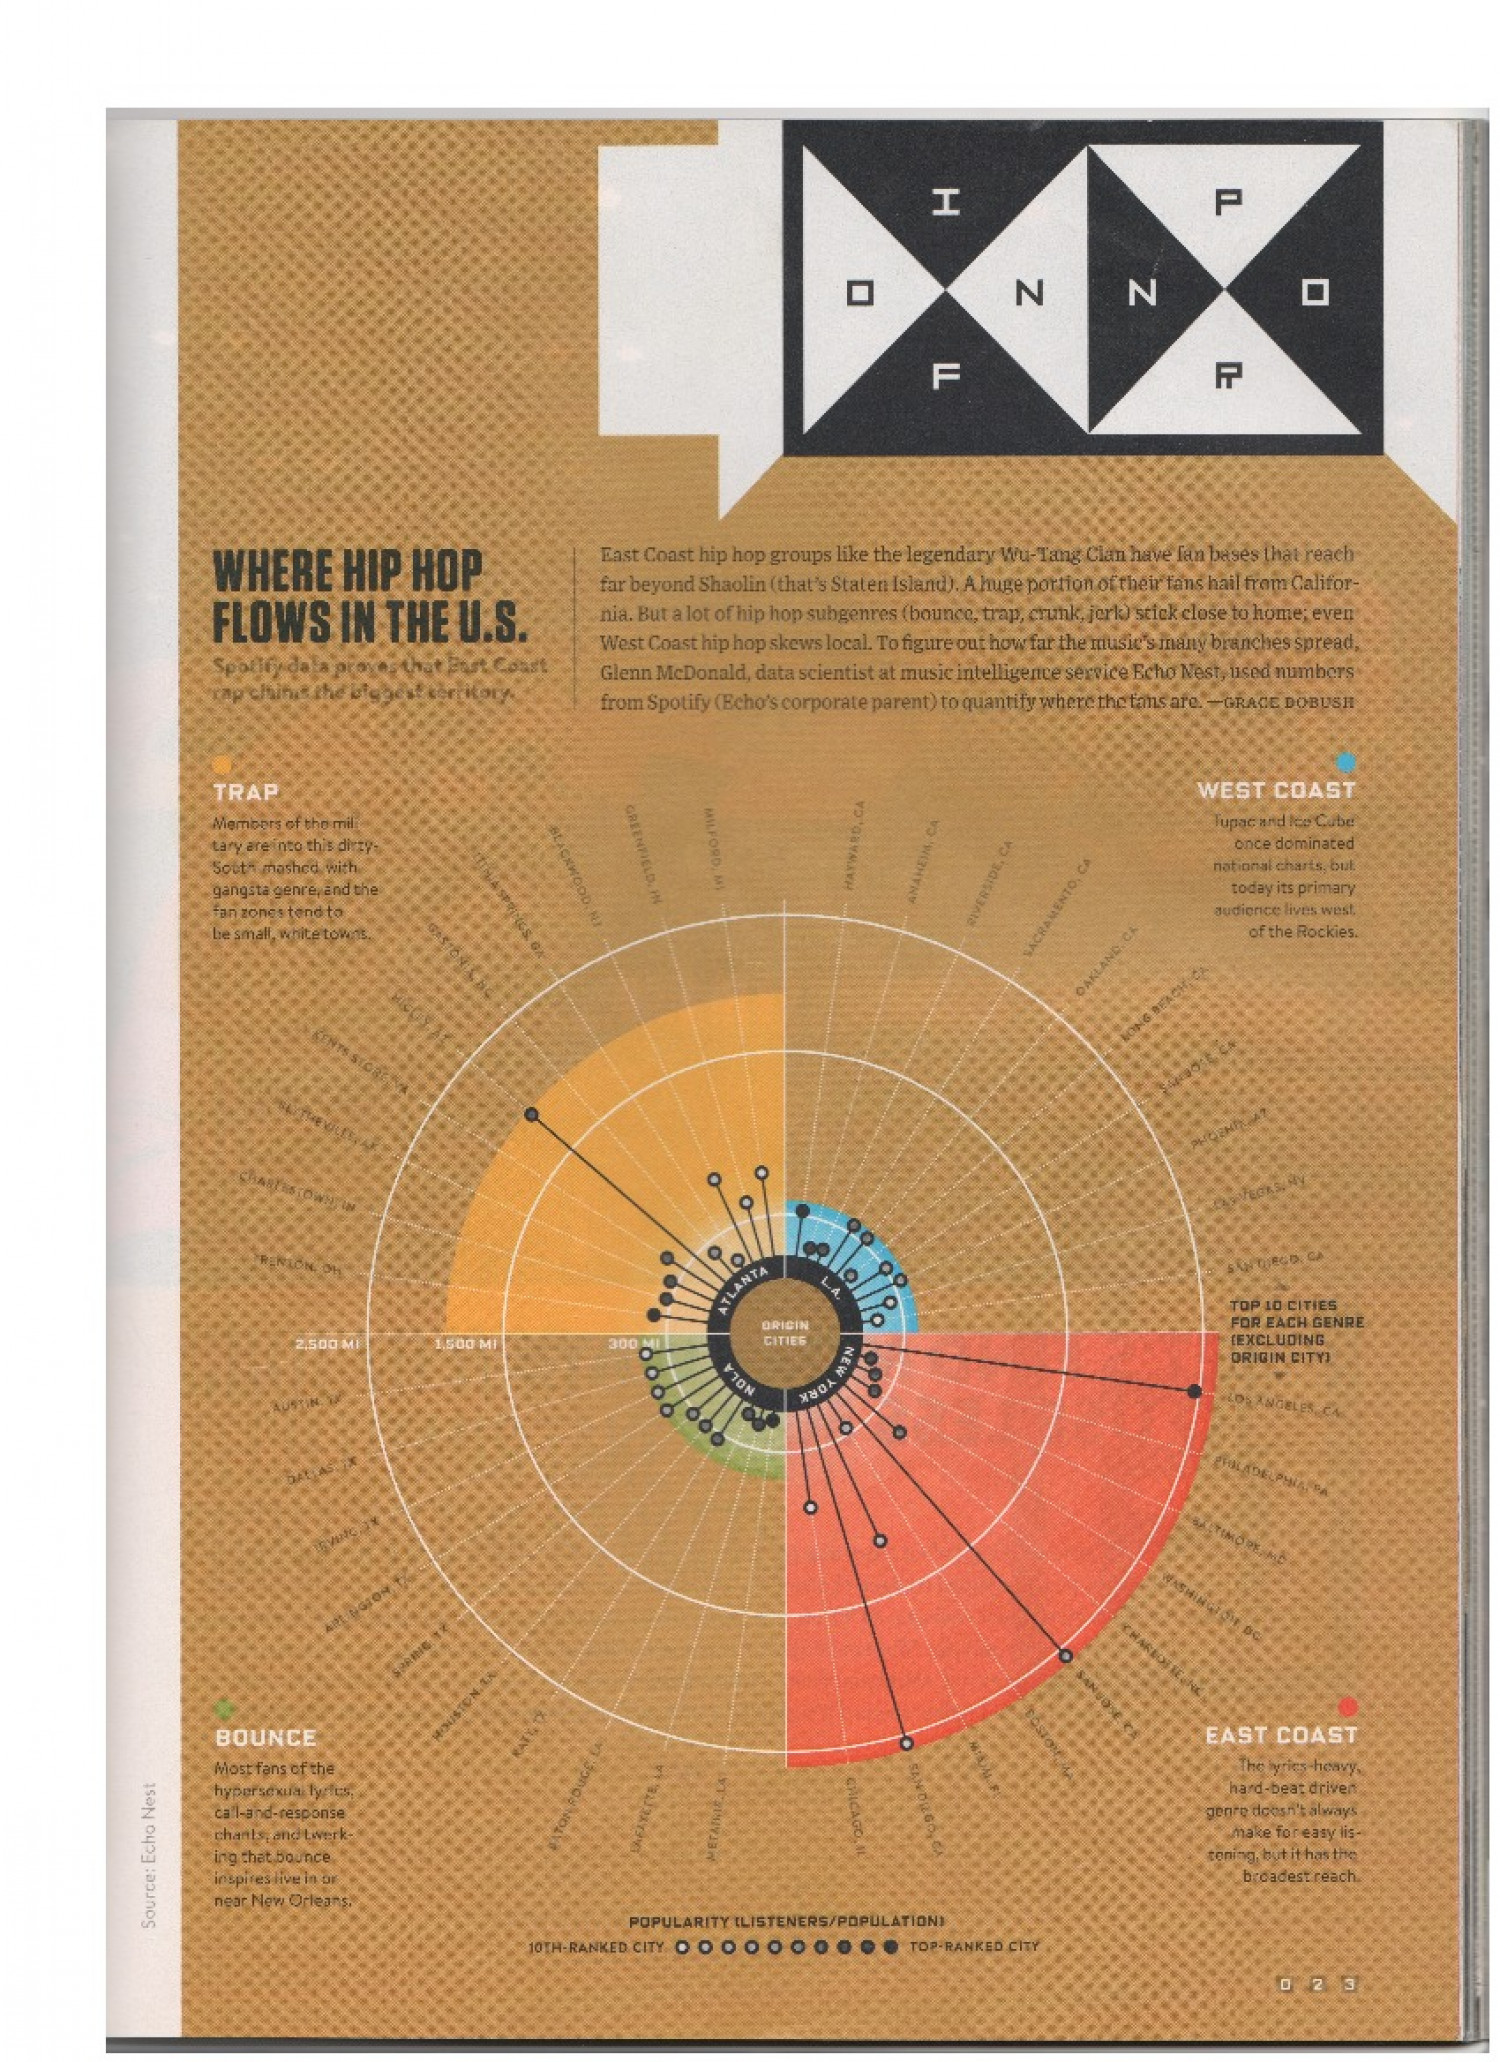 Where Hip-Hop Flows in the US Infographic